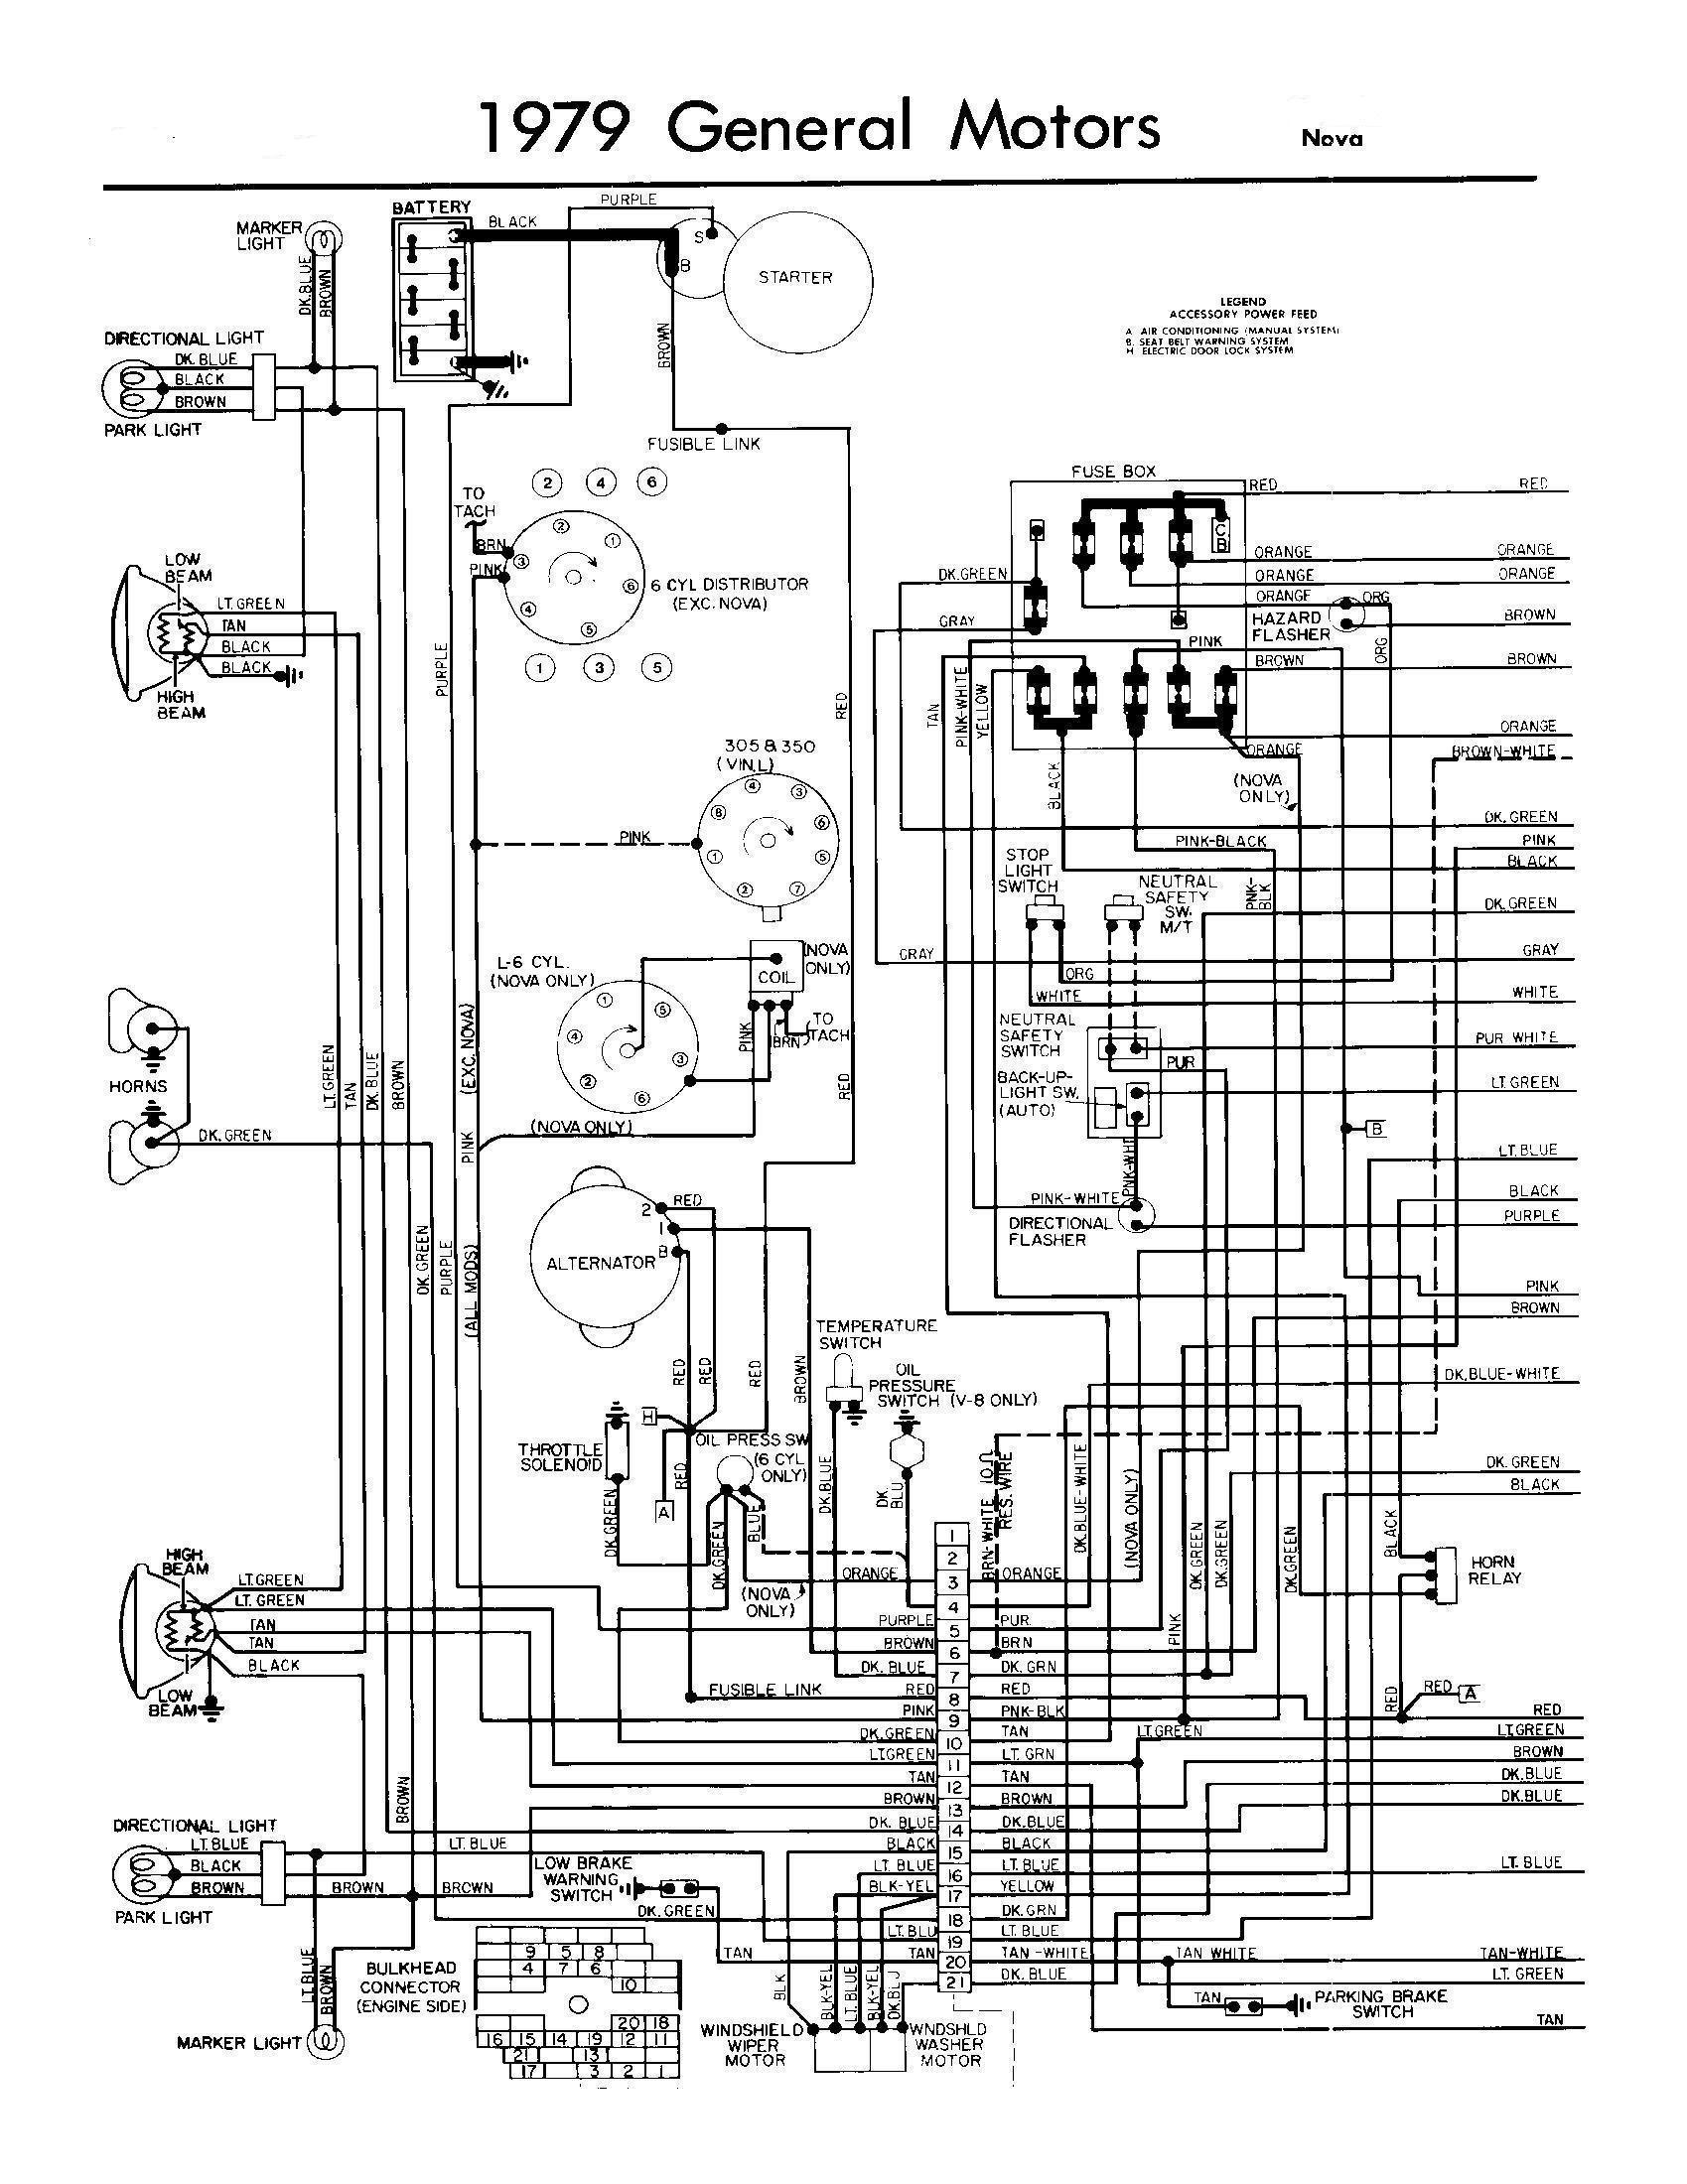 1985 Gmc Wiring Diagram - Citroen C4 1 6 Hdi Wiring Diagram for Wiring  Diagram SchematicsWiring Diagram Schematics